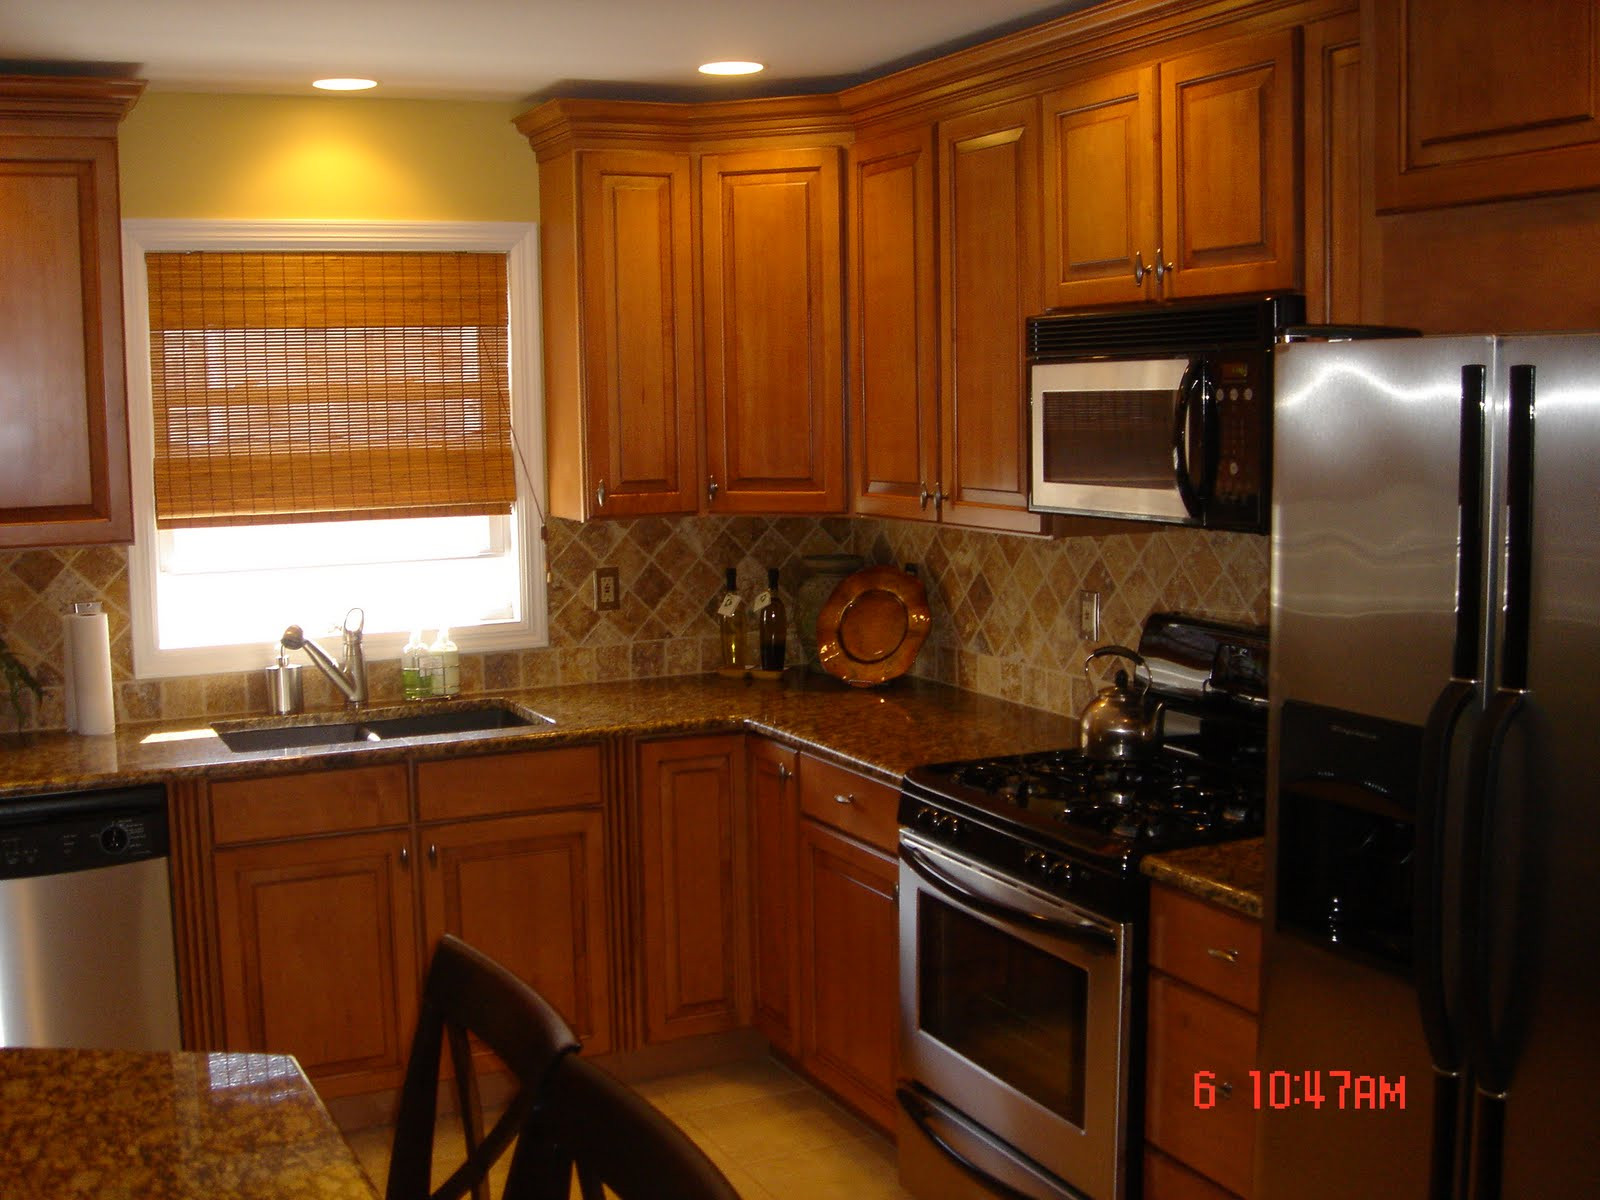 Best ideas about Oak Cabinets Kitchen Ideas . Save or Pin Kitchen Backsplash Oak Cabinets Best Home Decoration Now.